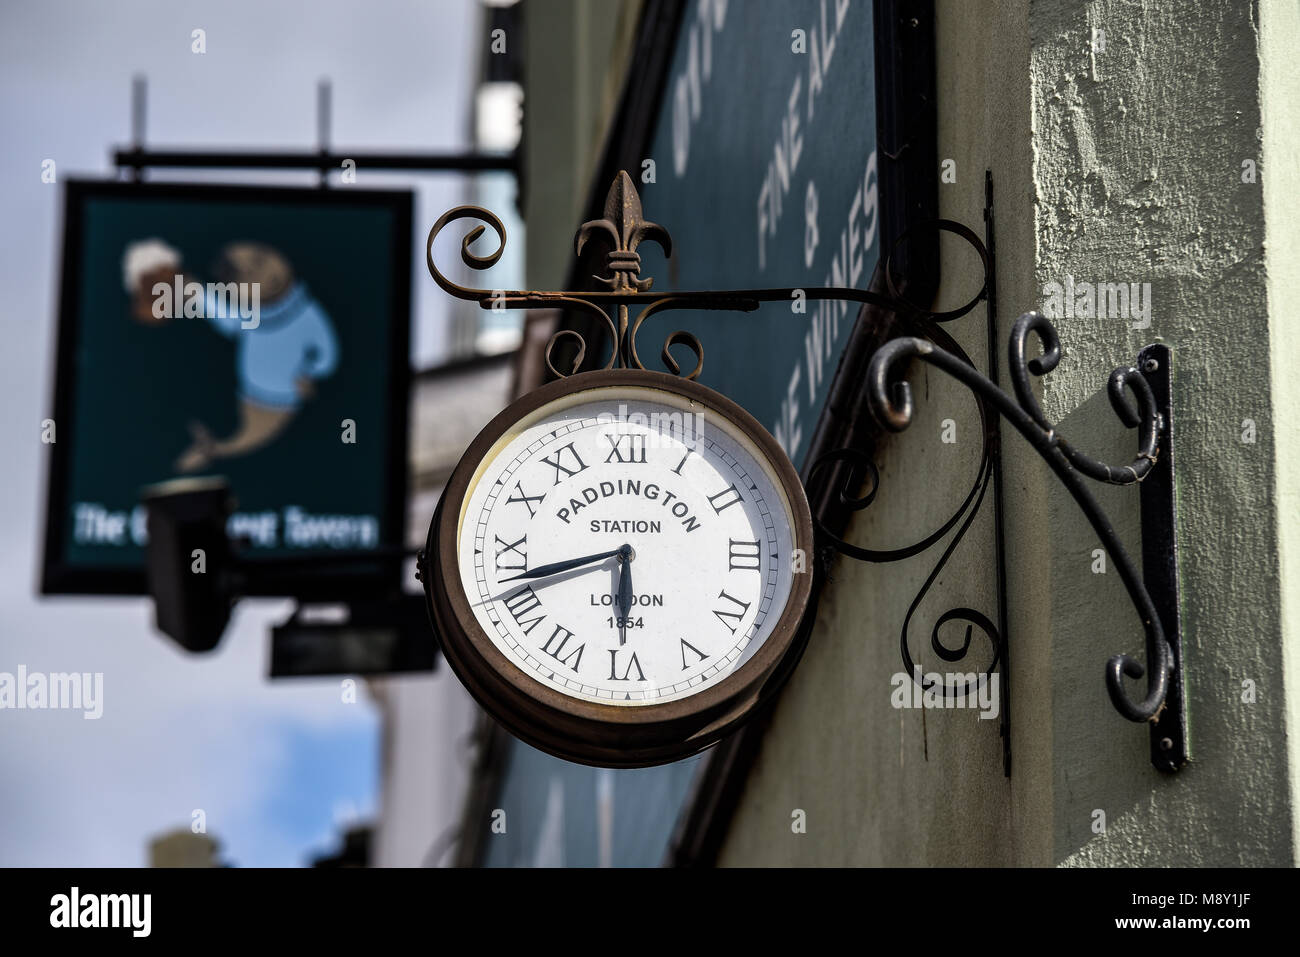 Small copy of Paddington railway station clock on the wall of a pub. External wall mounted - Stock Image